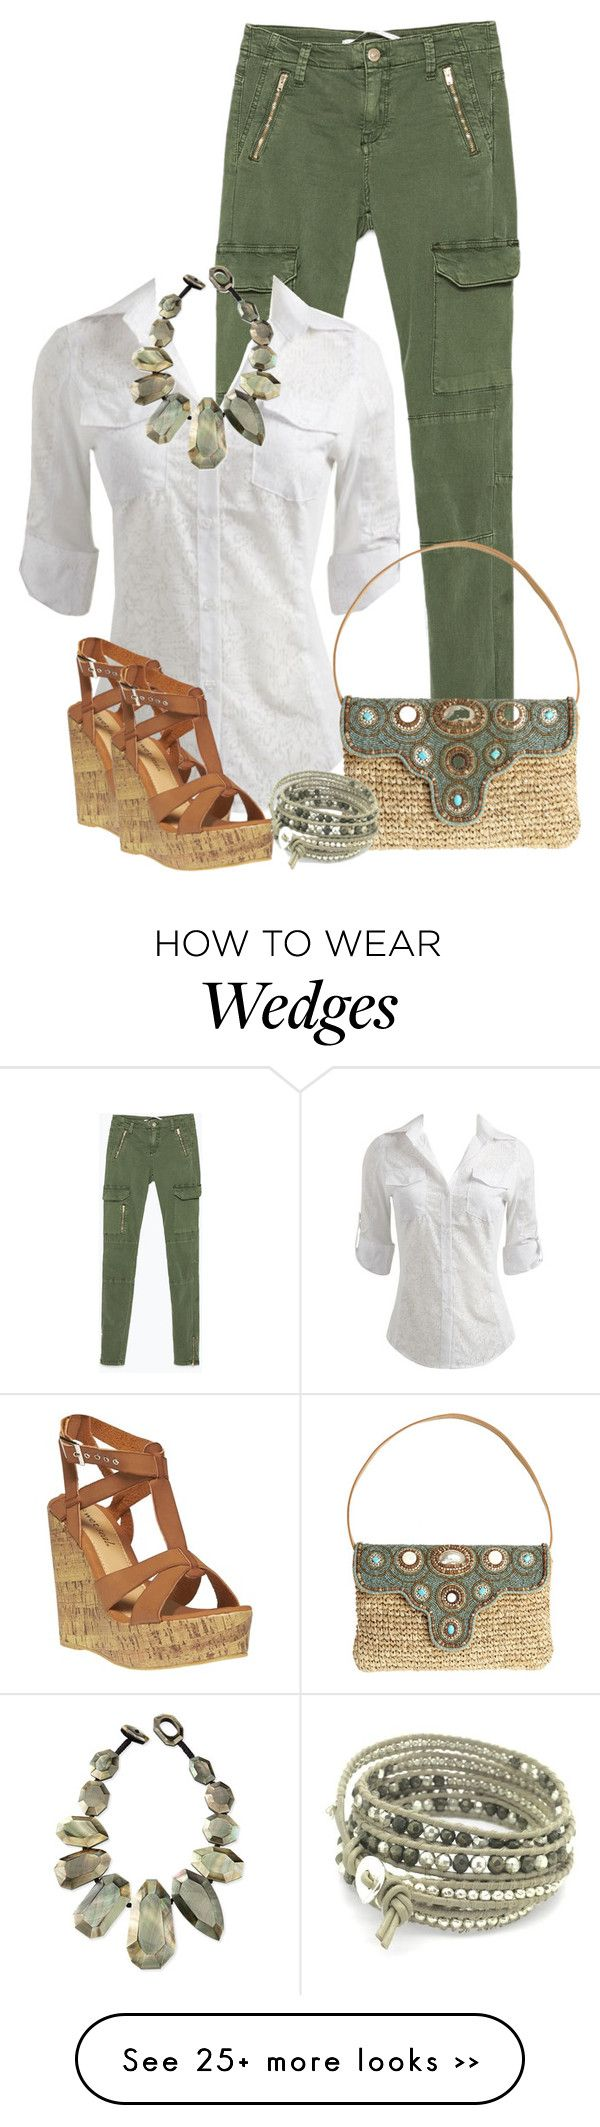 """Wedge Sandals"" by debpat on Polyvore"